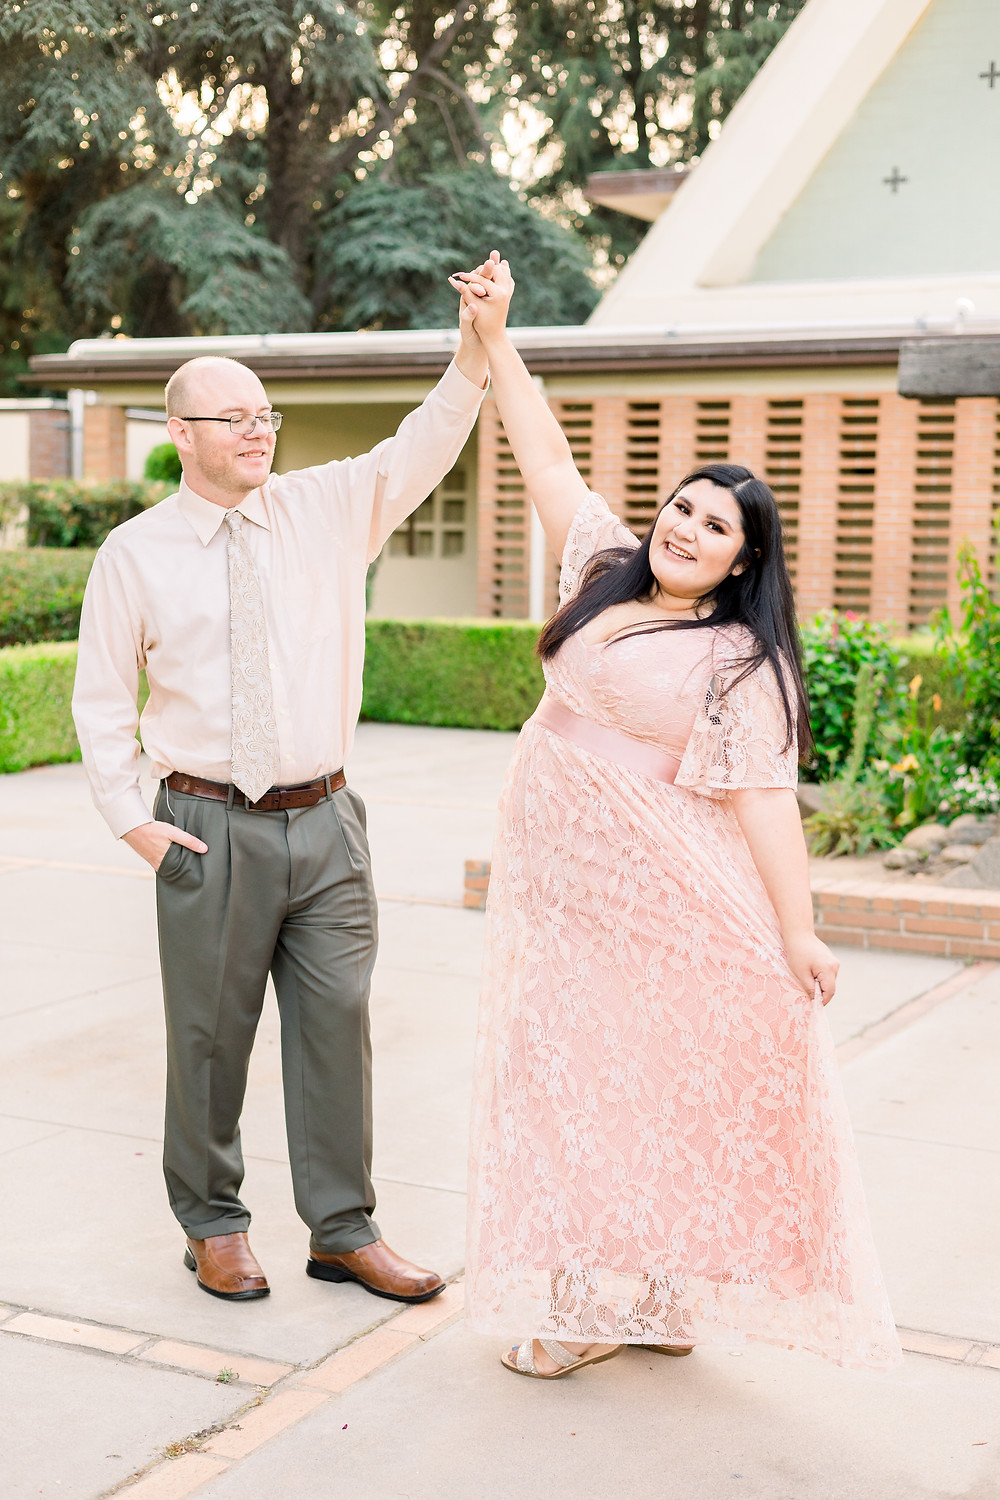 Engagement photographer in Fresno, CA